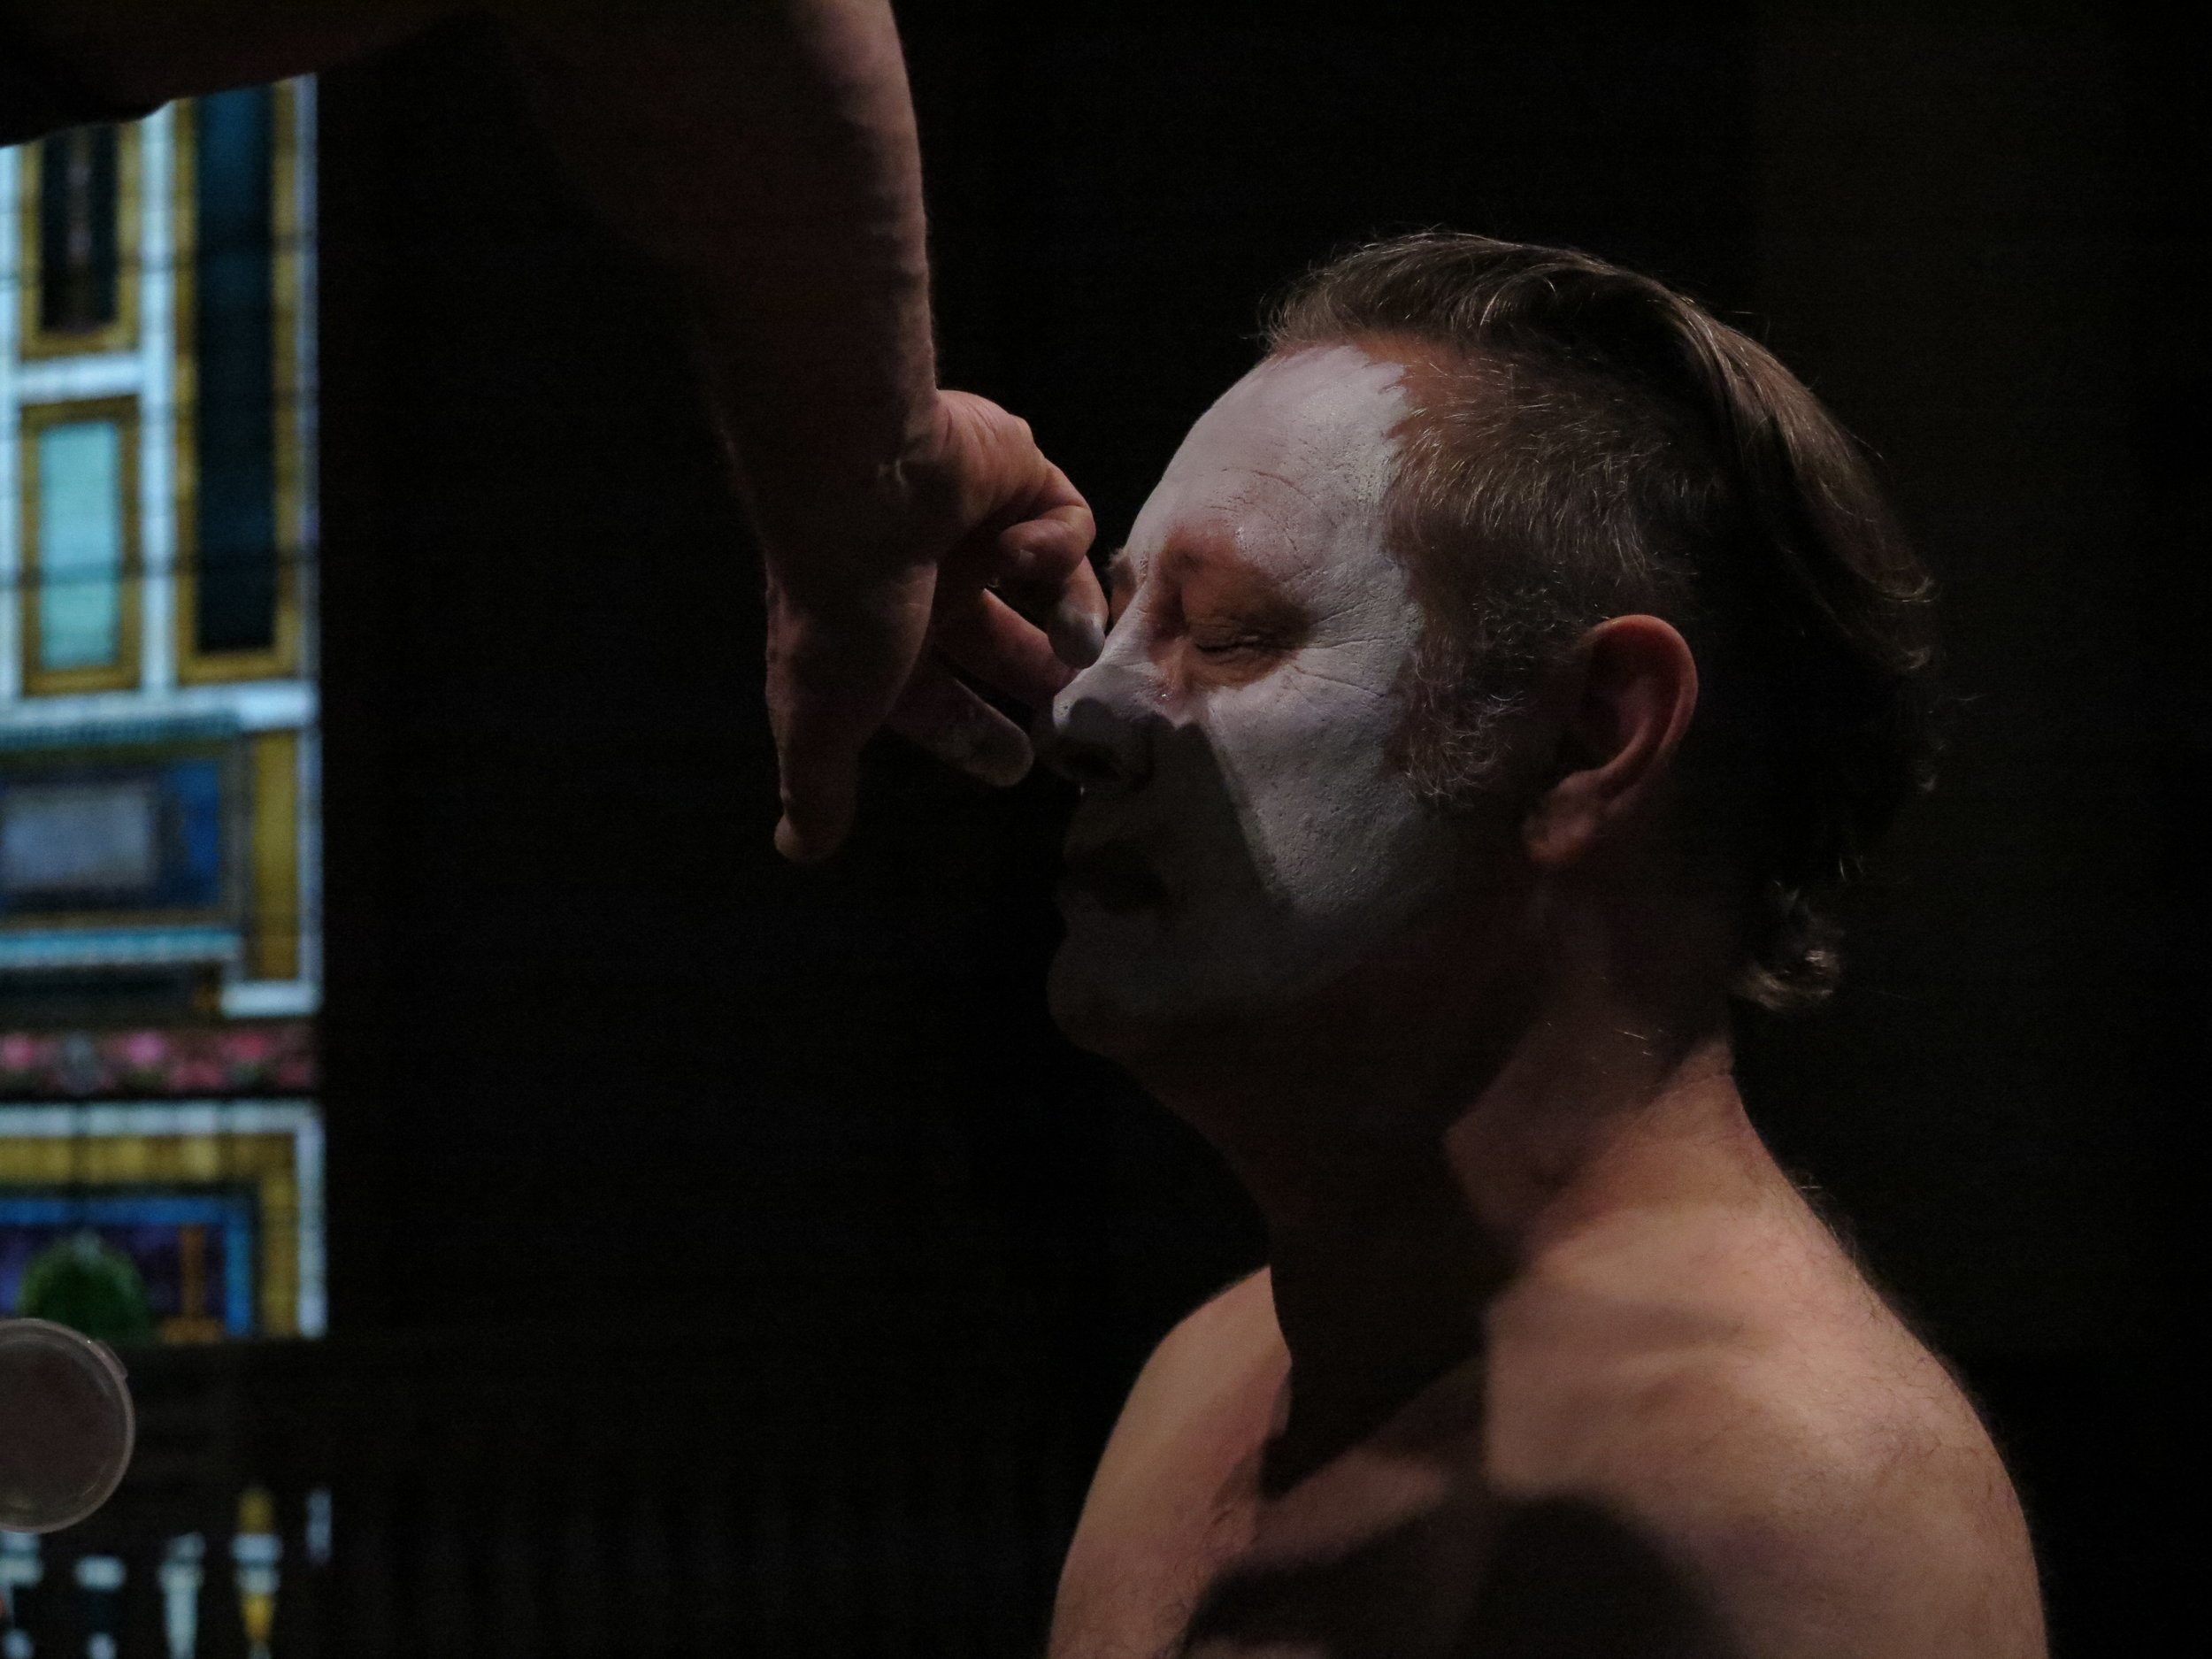 Ben Watts eyes closed makeup, Faust 3: The Turd Coming